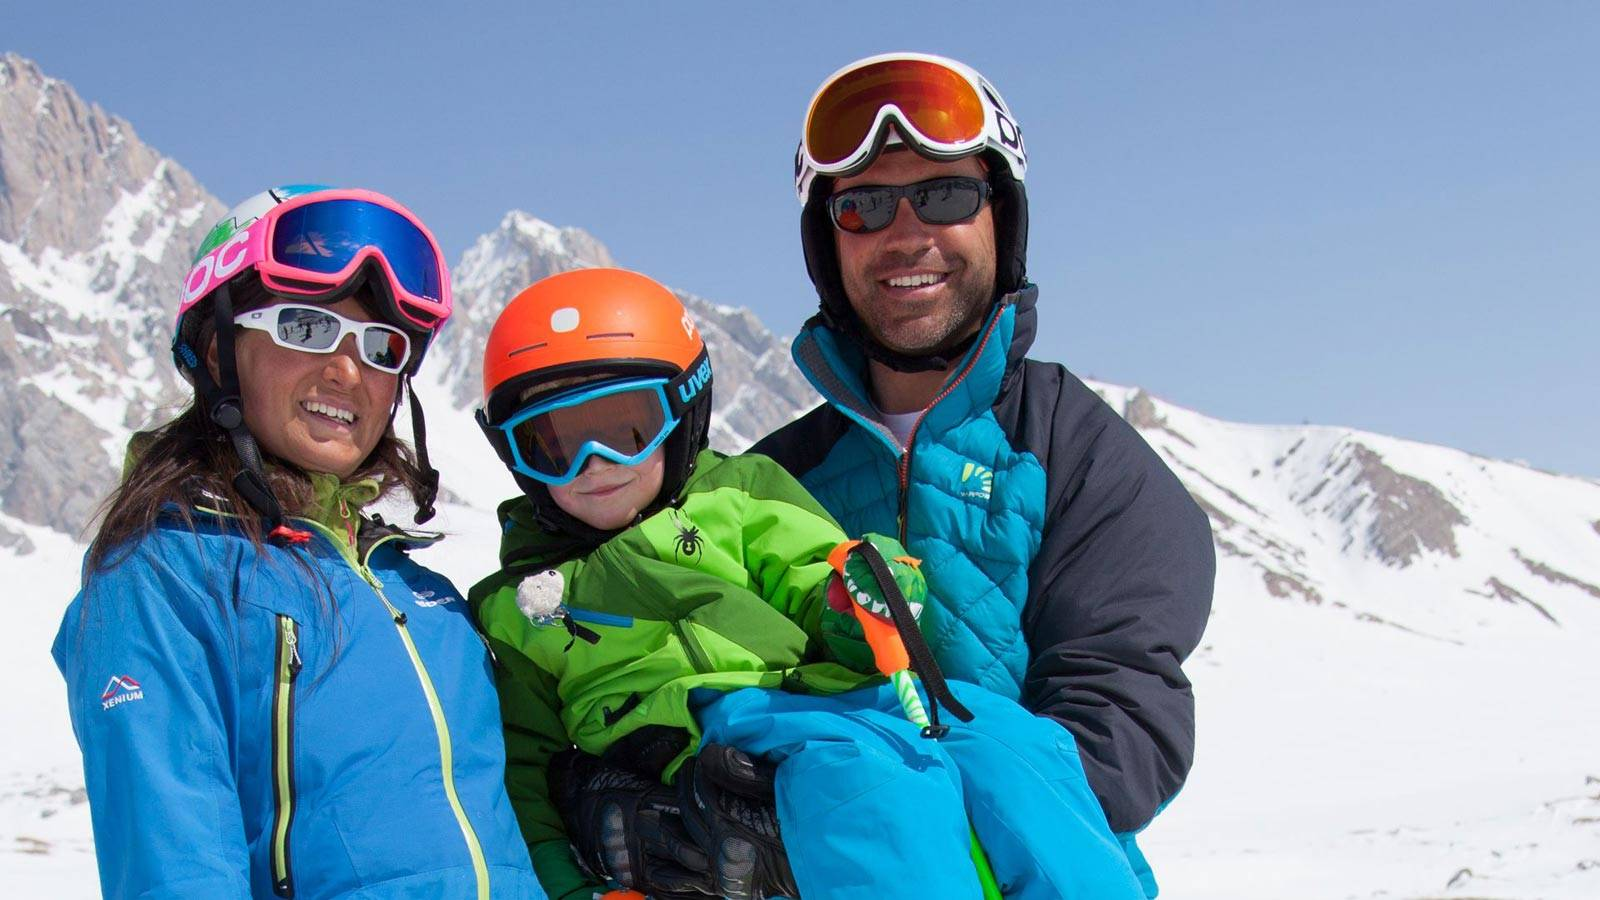 A child has fun on the snow with his parents